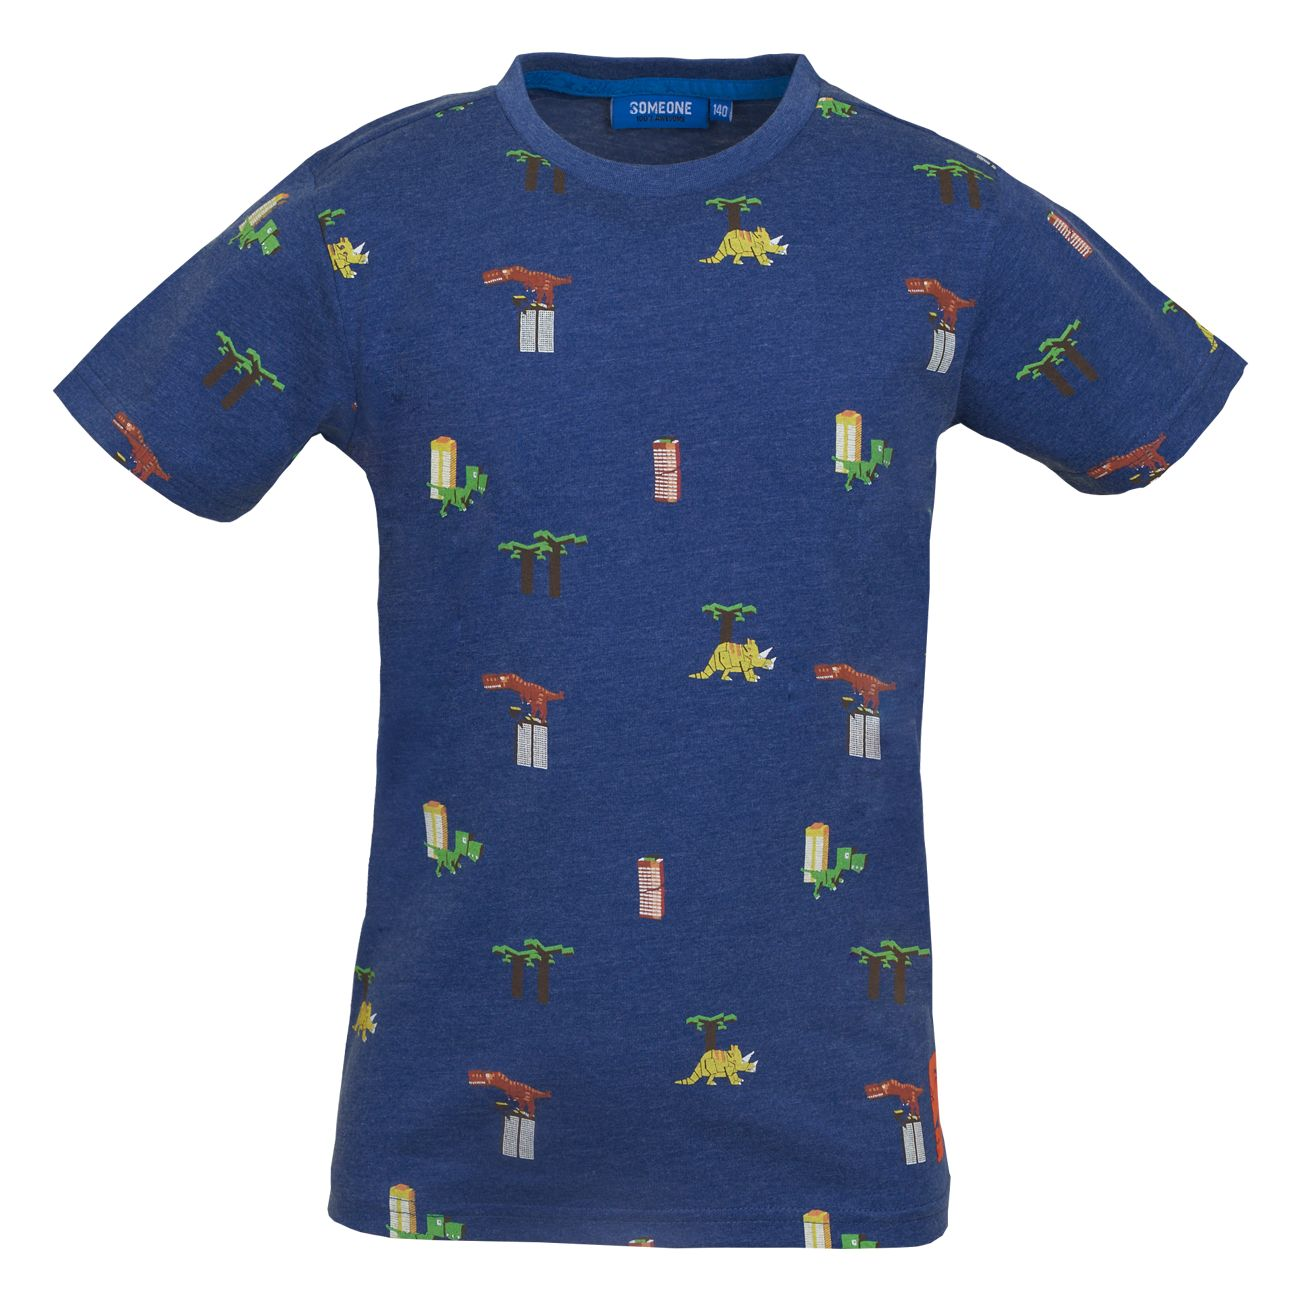 T-Shirt Dinos 098 Blue SOMEONE 100% Awesome